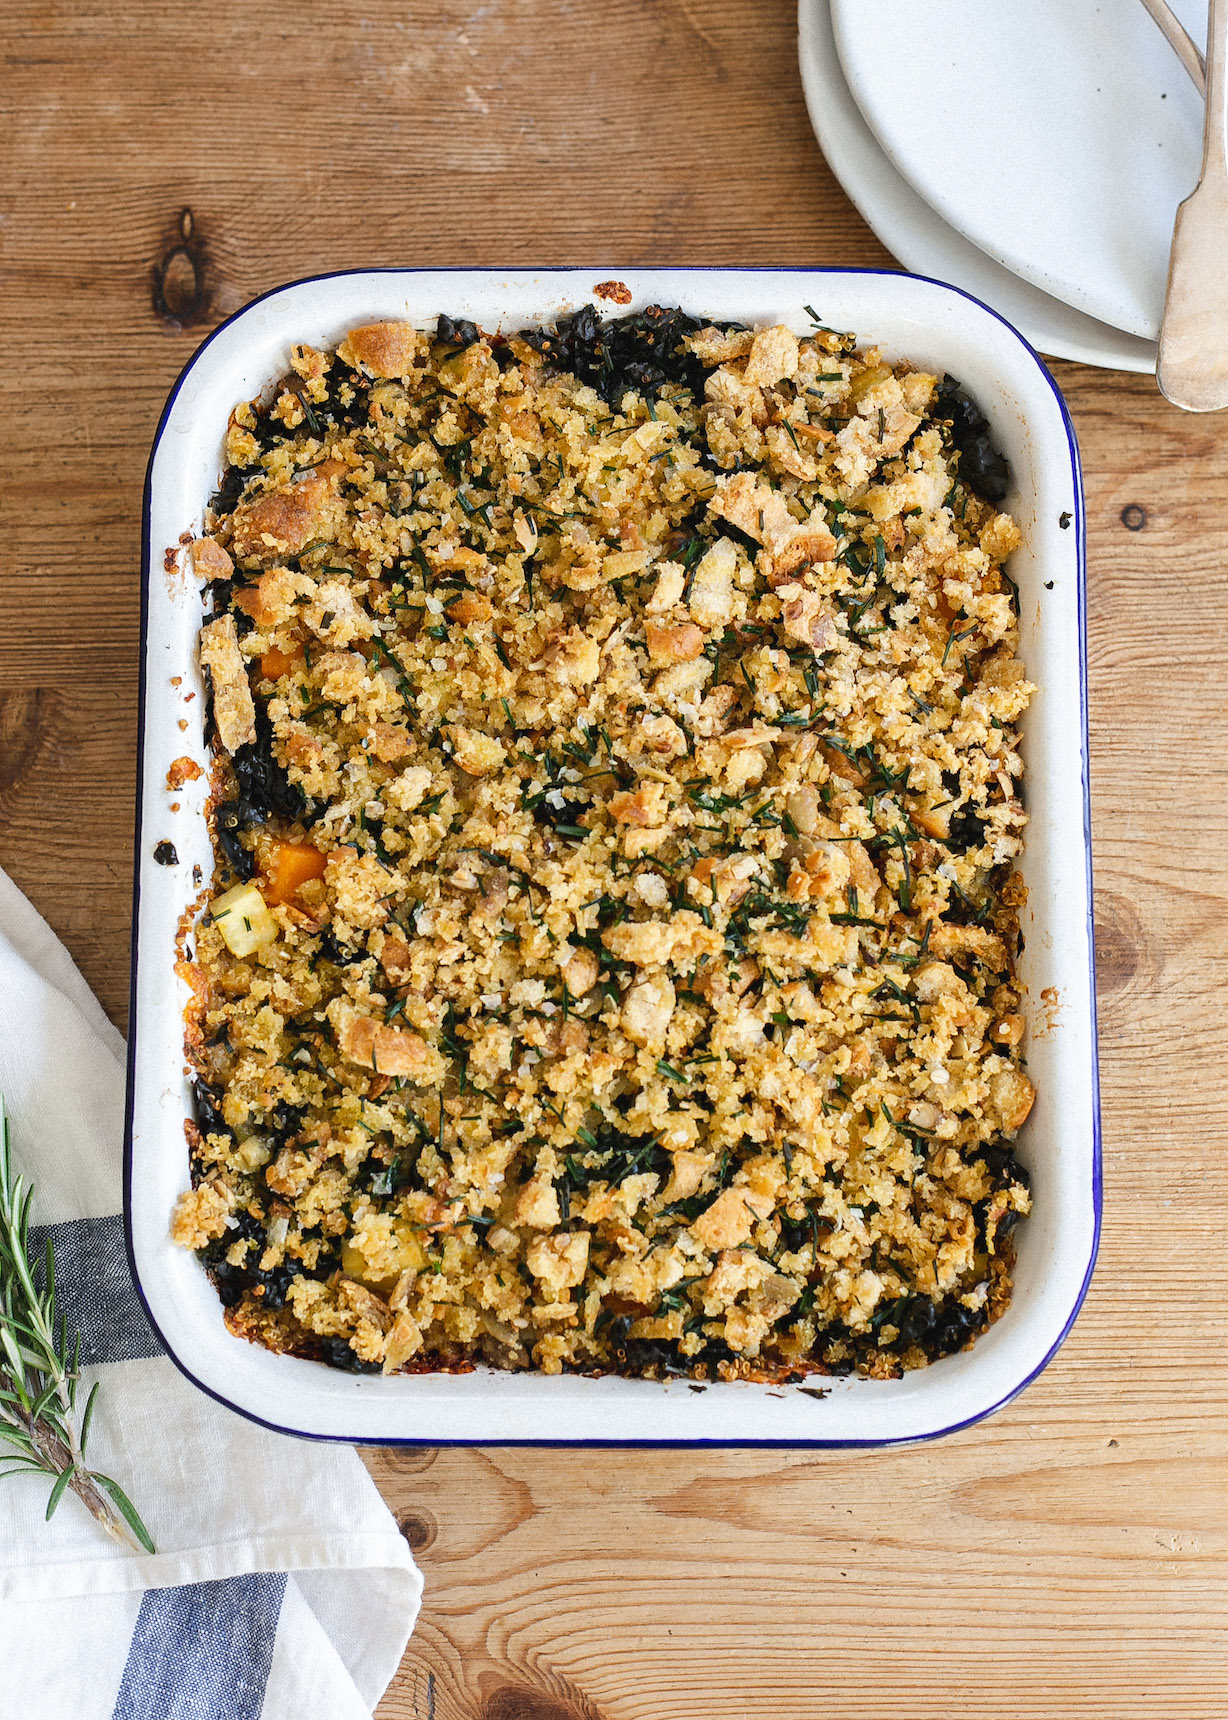 Low FODMAP Autumn quinoa and vegetable bake